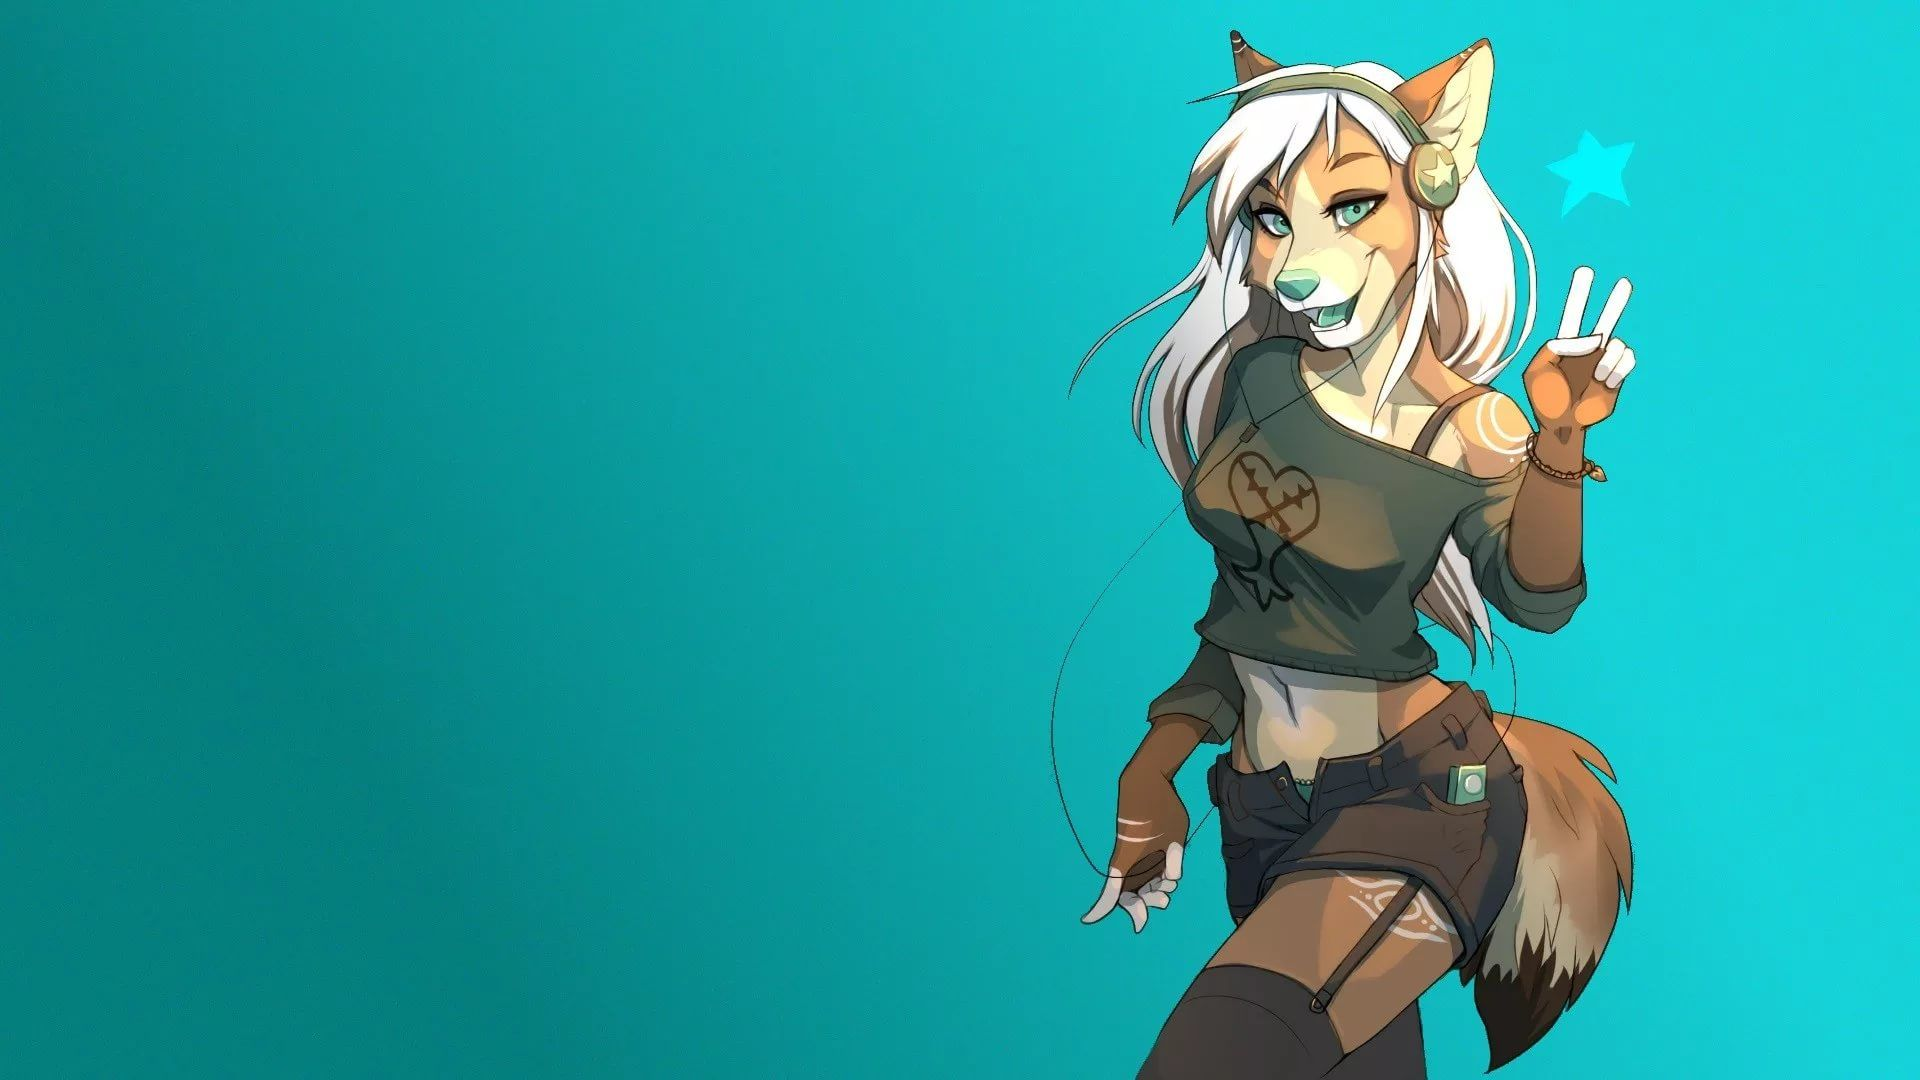 Furry Background wallpaper photo